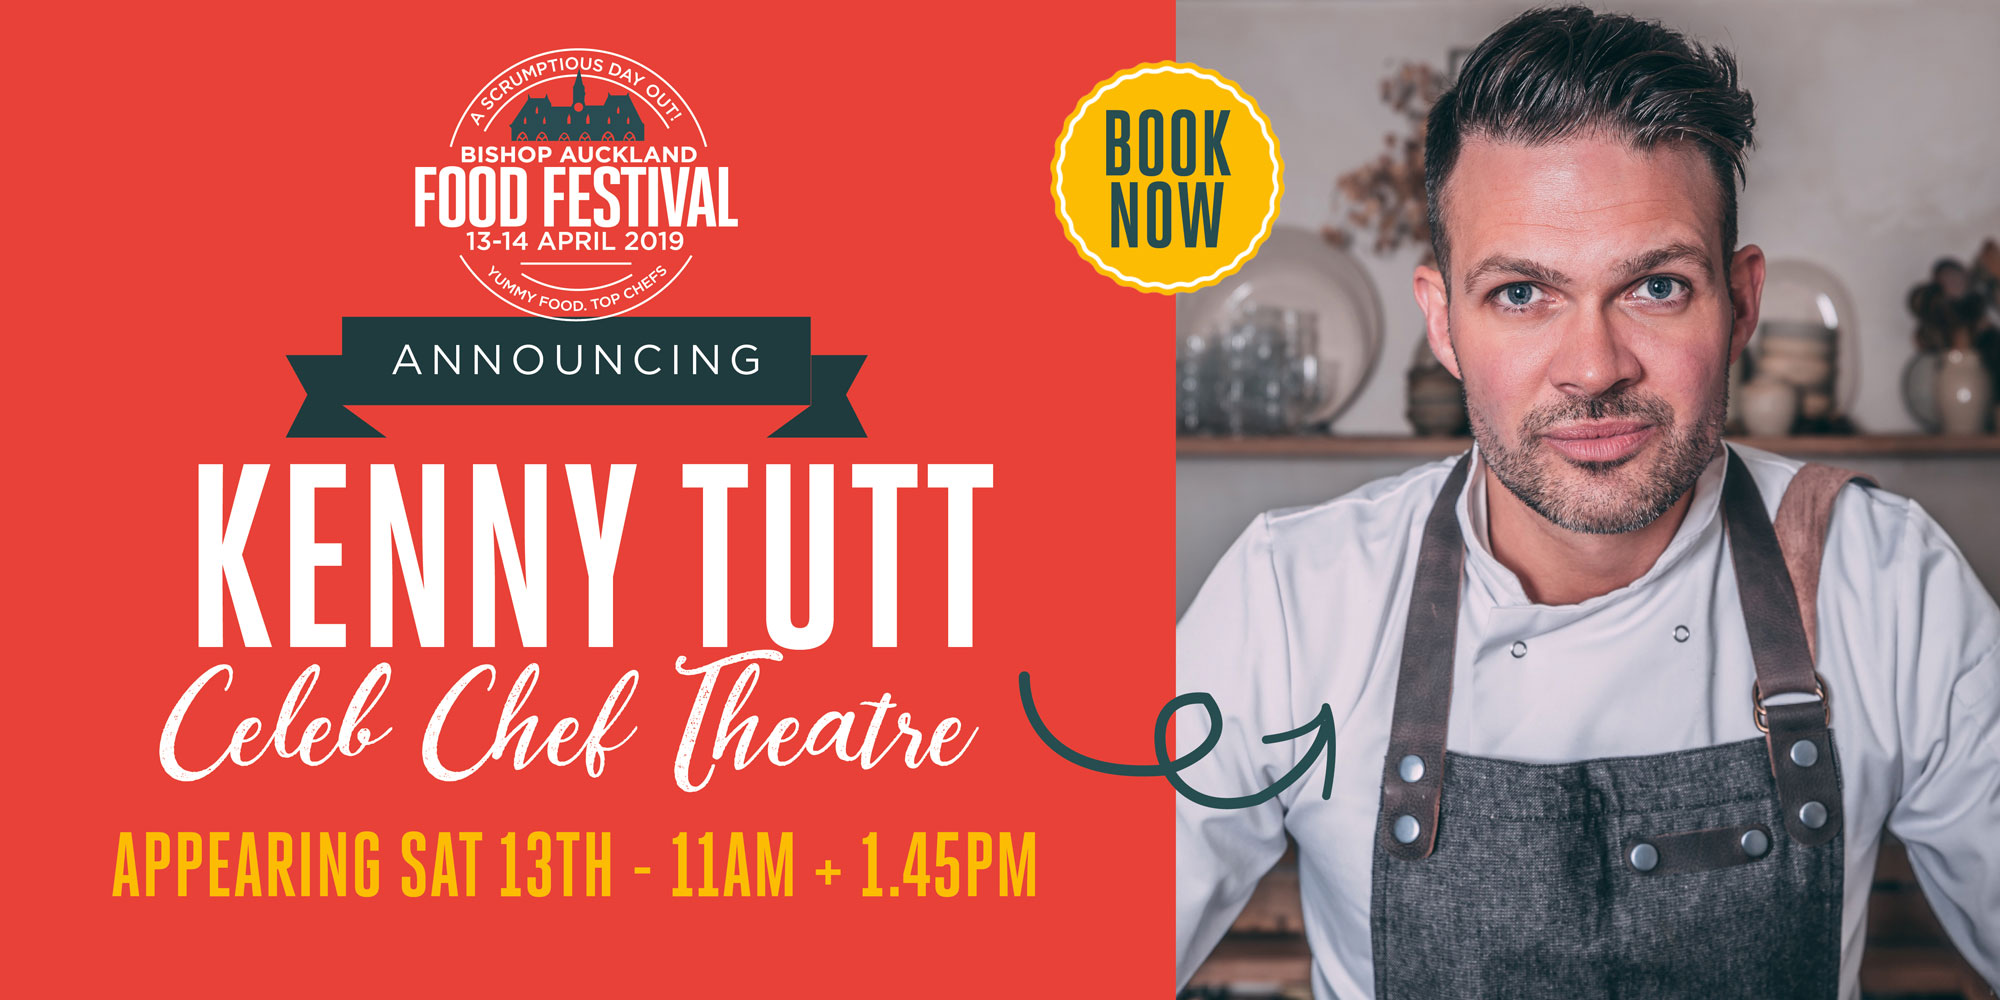 Kenny Tutt Celeb Chef Theatre